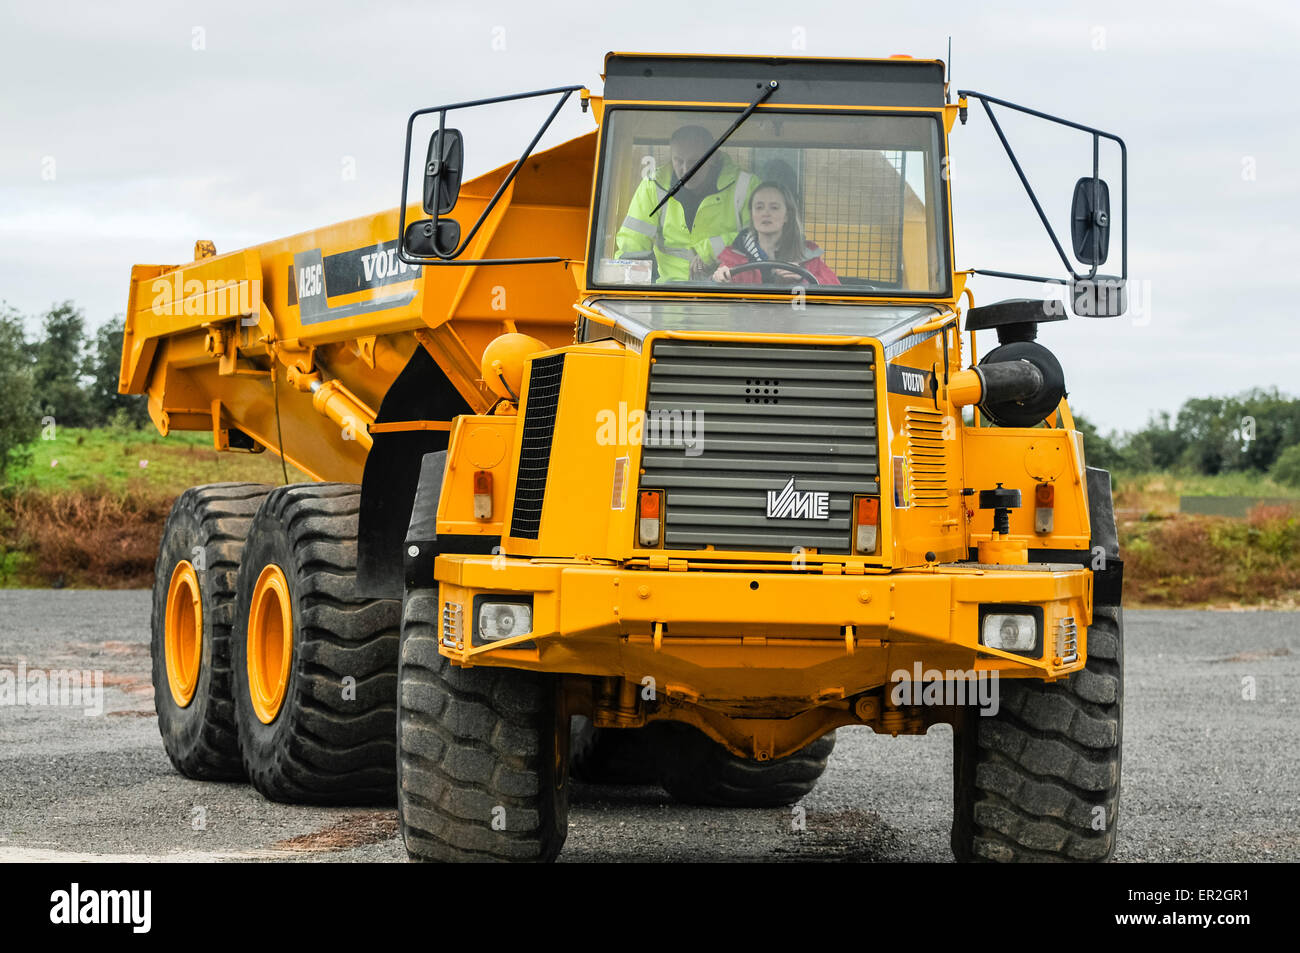 Hauler Stock Photos Images Alamy Volvo A25c Wiring Diagram A Young Girl Drives Large Dumper Truck Image